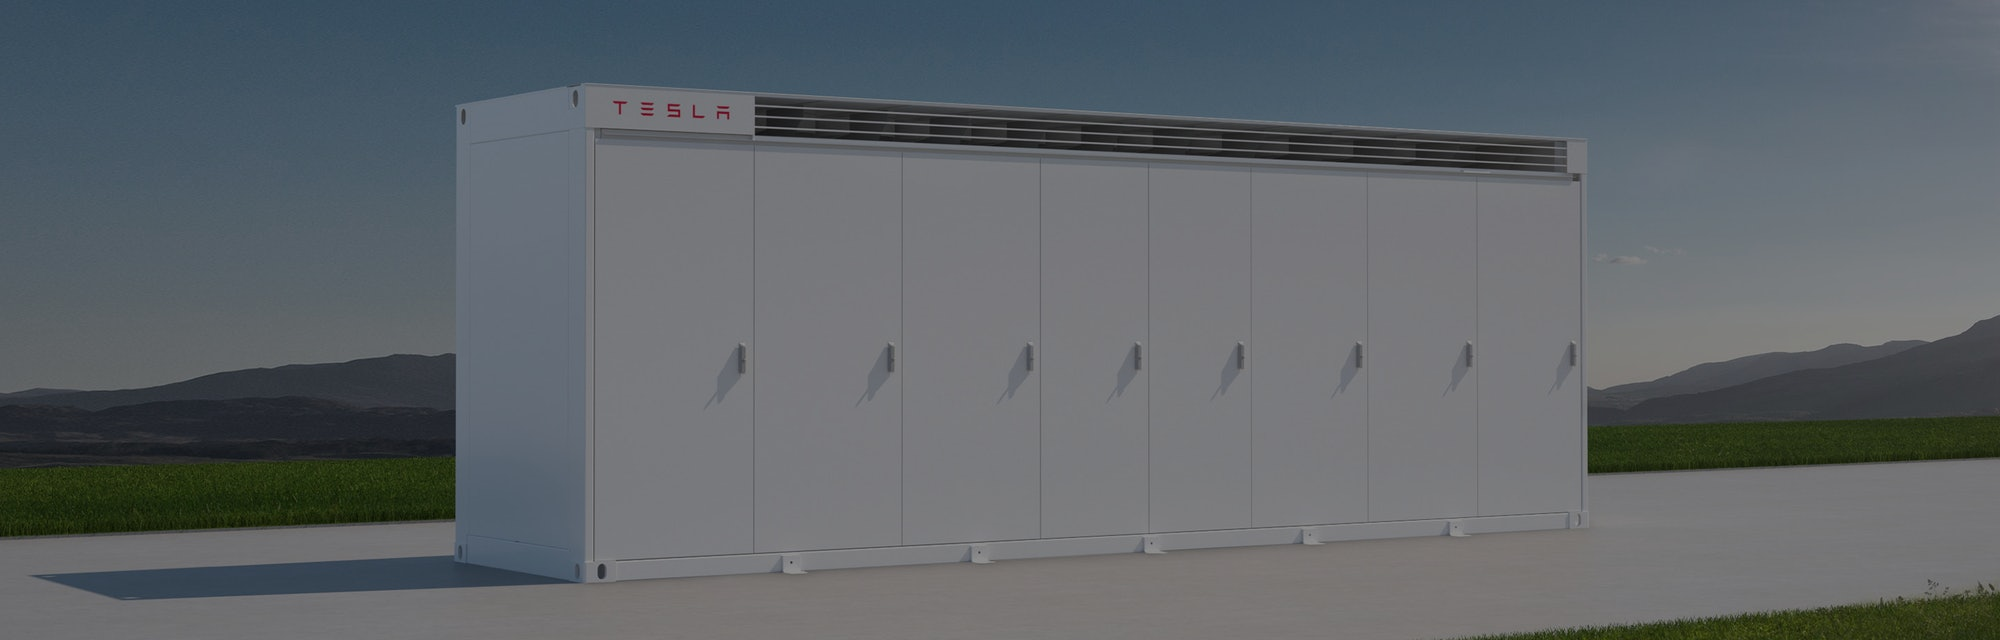 Tesla has begun accepting online orders for its Megapack, a large-scale stationary battery for comme...